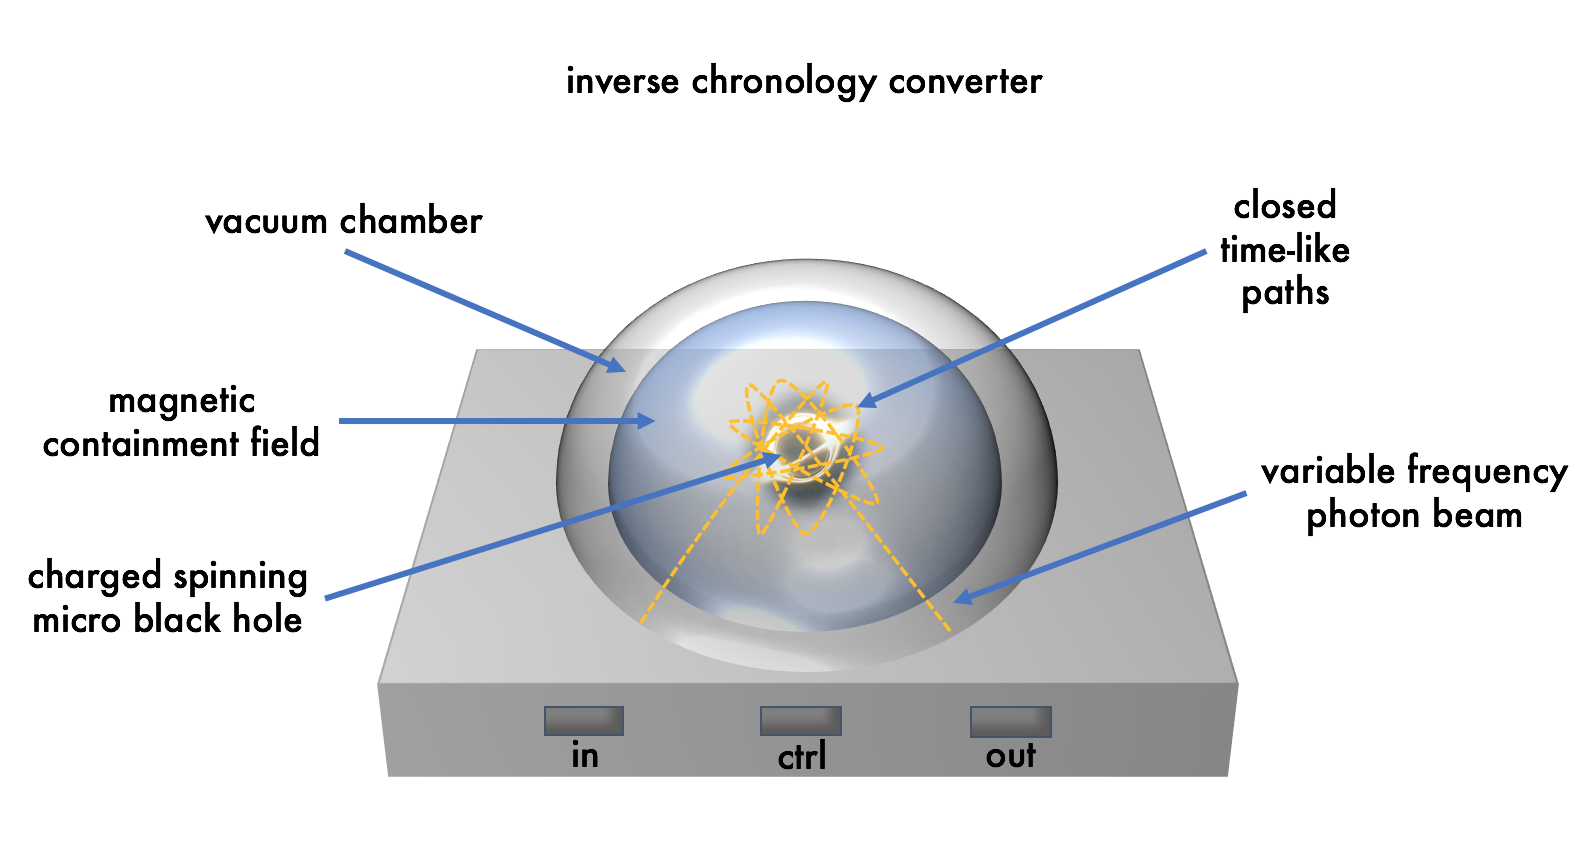 Inverse Chronology Converter Enables Pre-Time Data Integration and Analytics on Data Before It Is Created